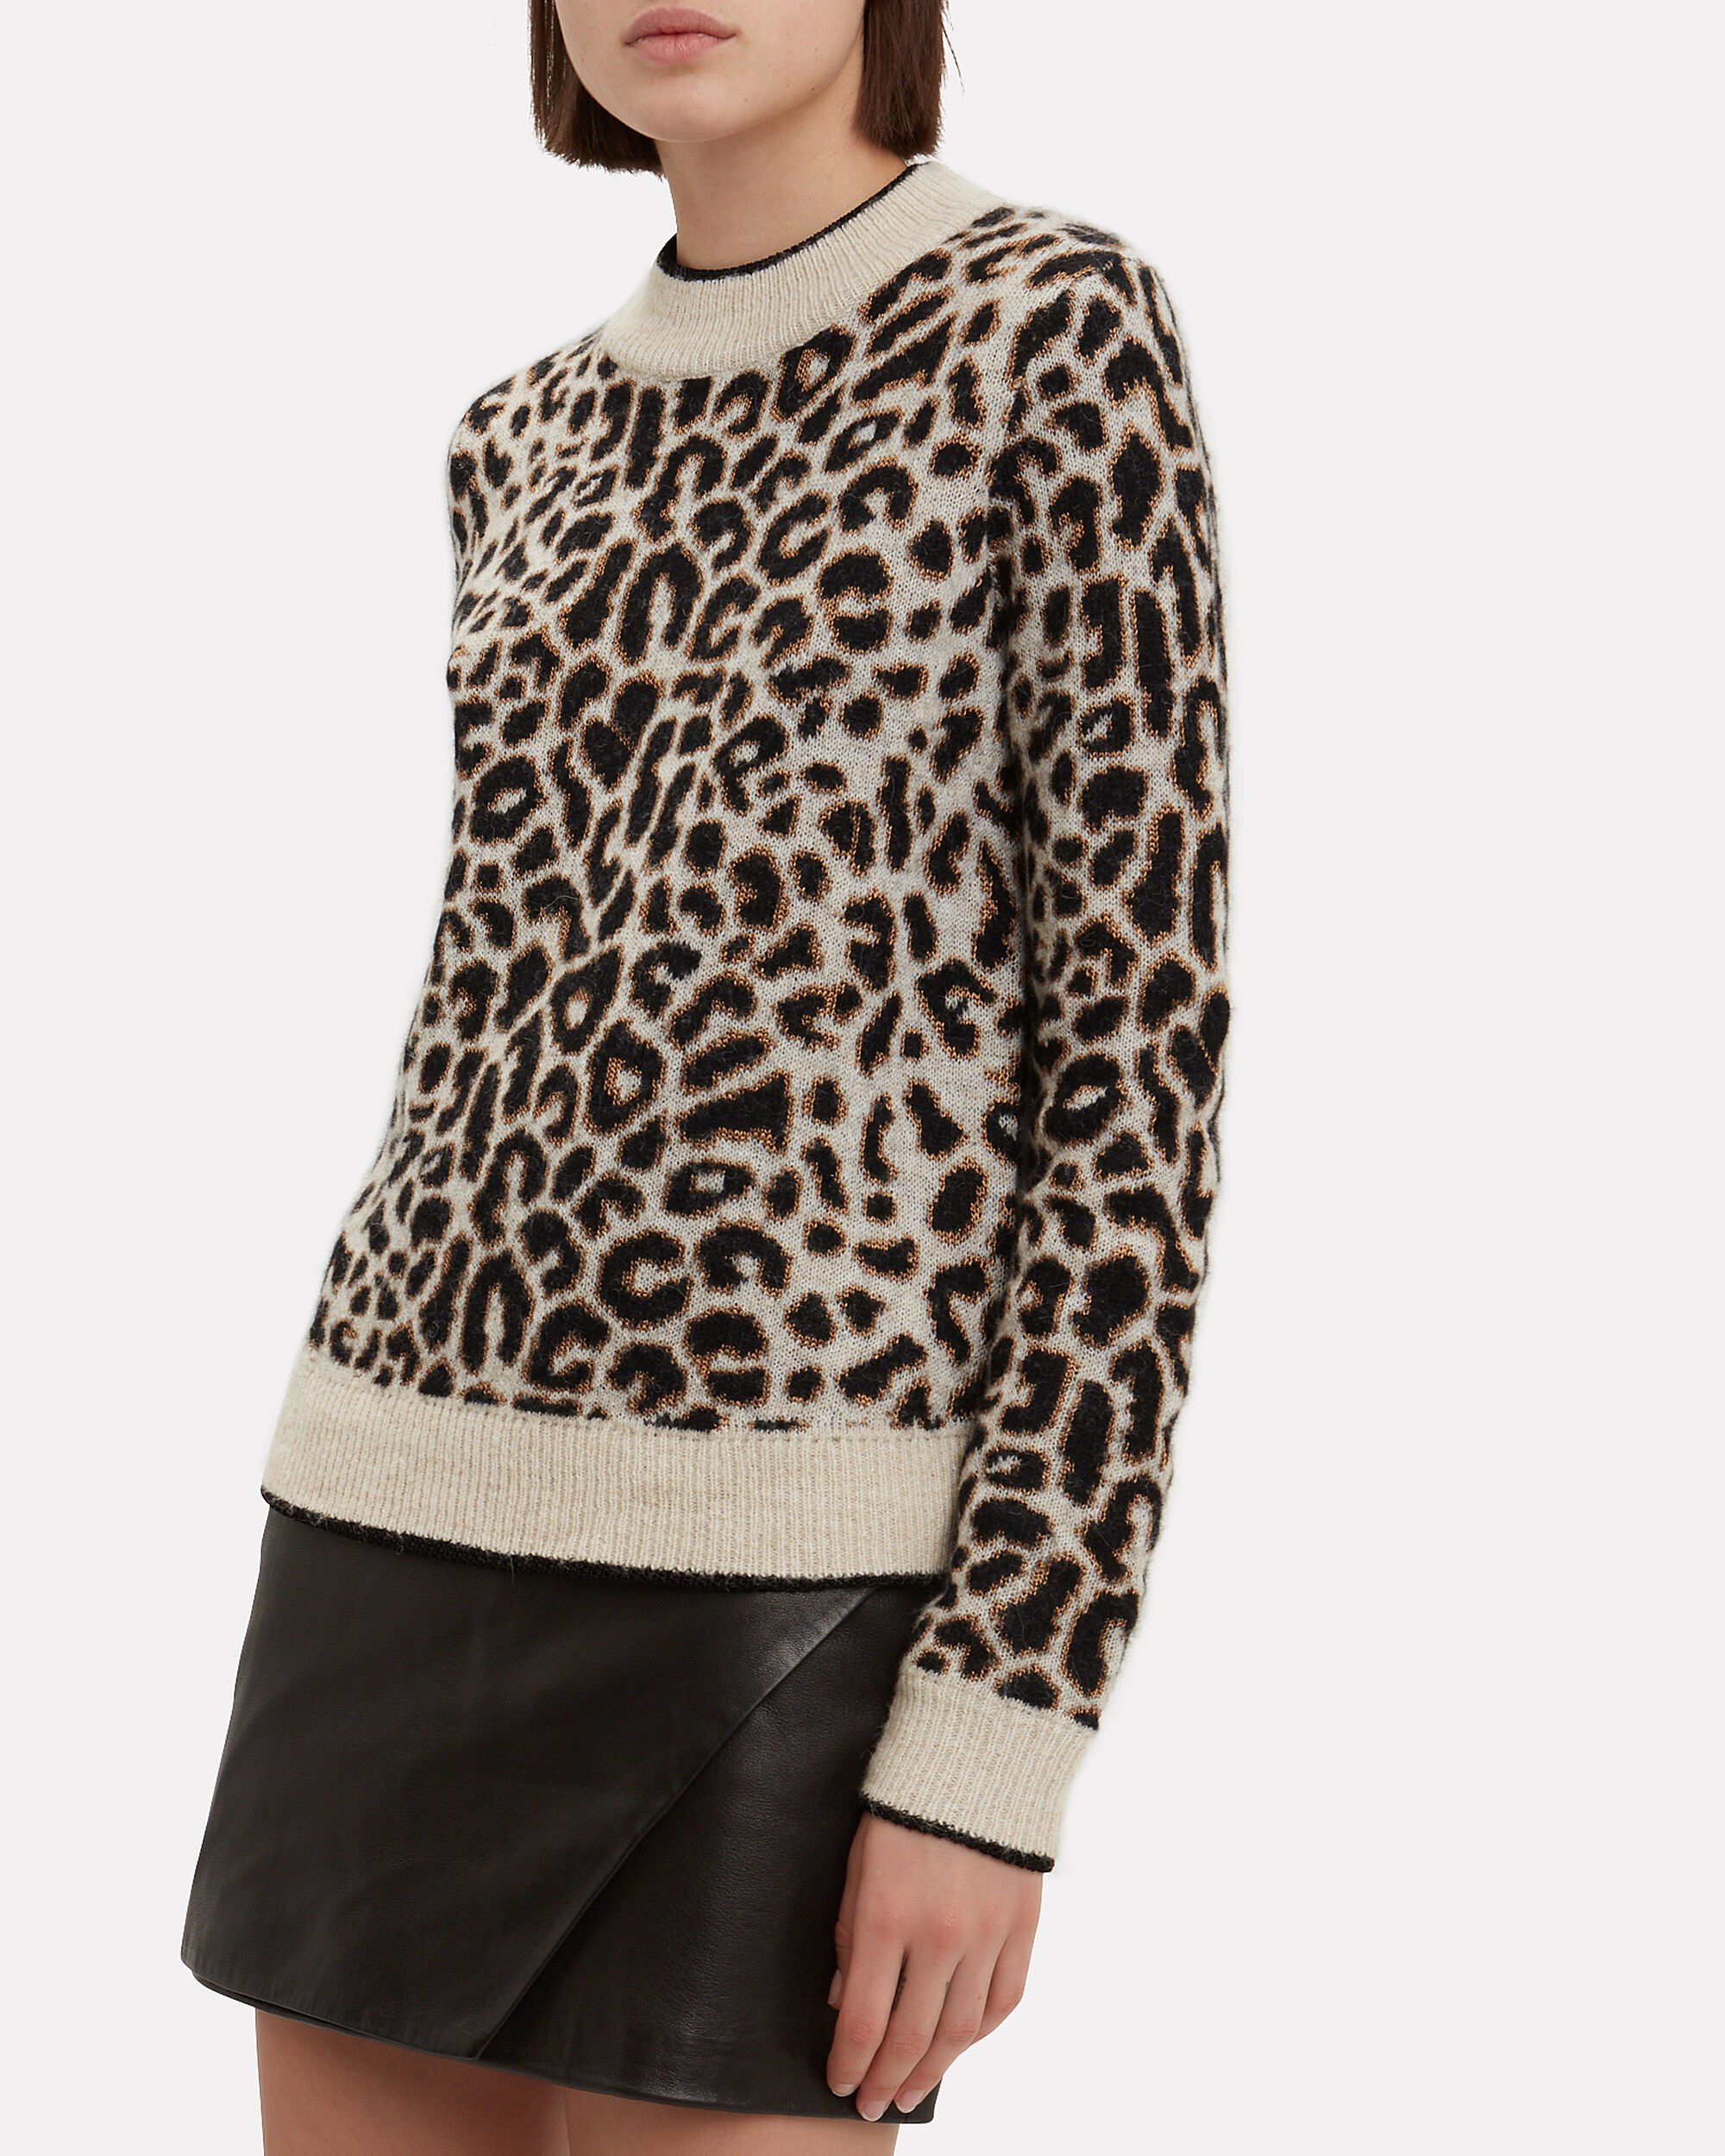 Marly Leopard Sweater, BROWN, hi-res